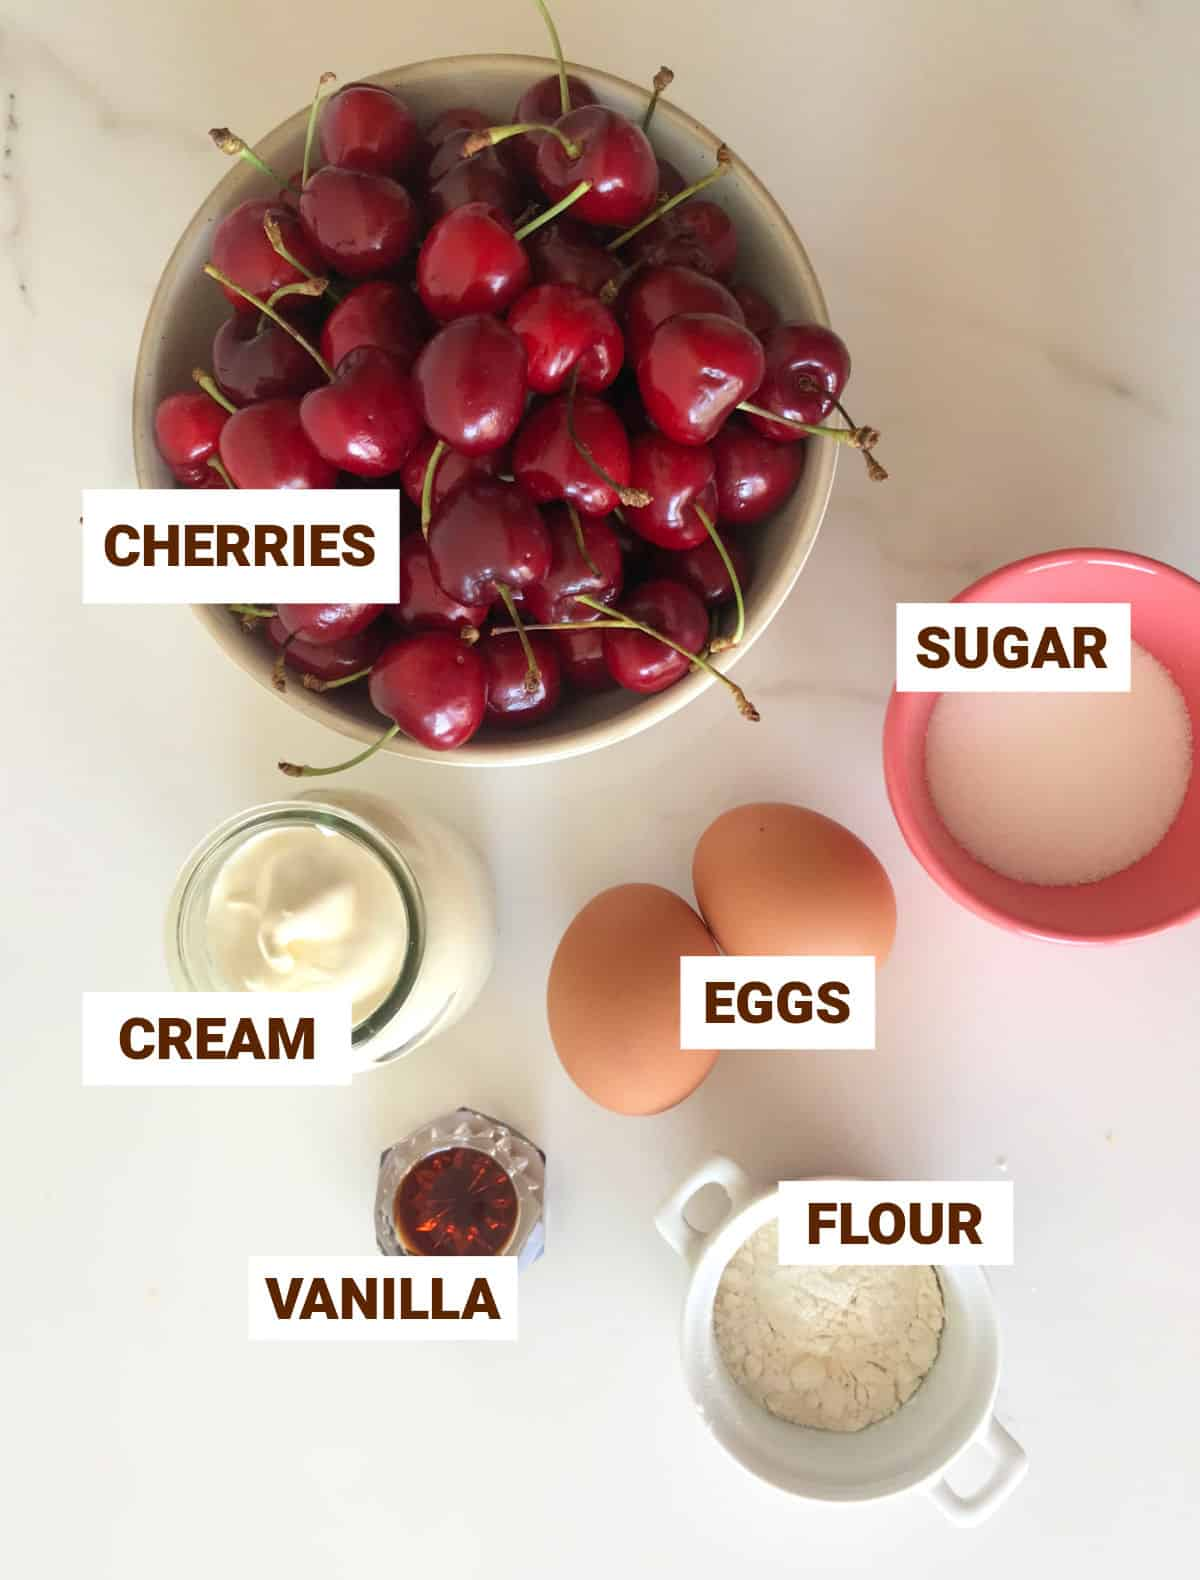 Cherry custard filling ingredients in bowls on white surface including cream, eggs, vanilla